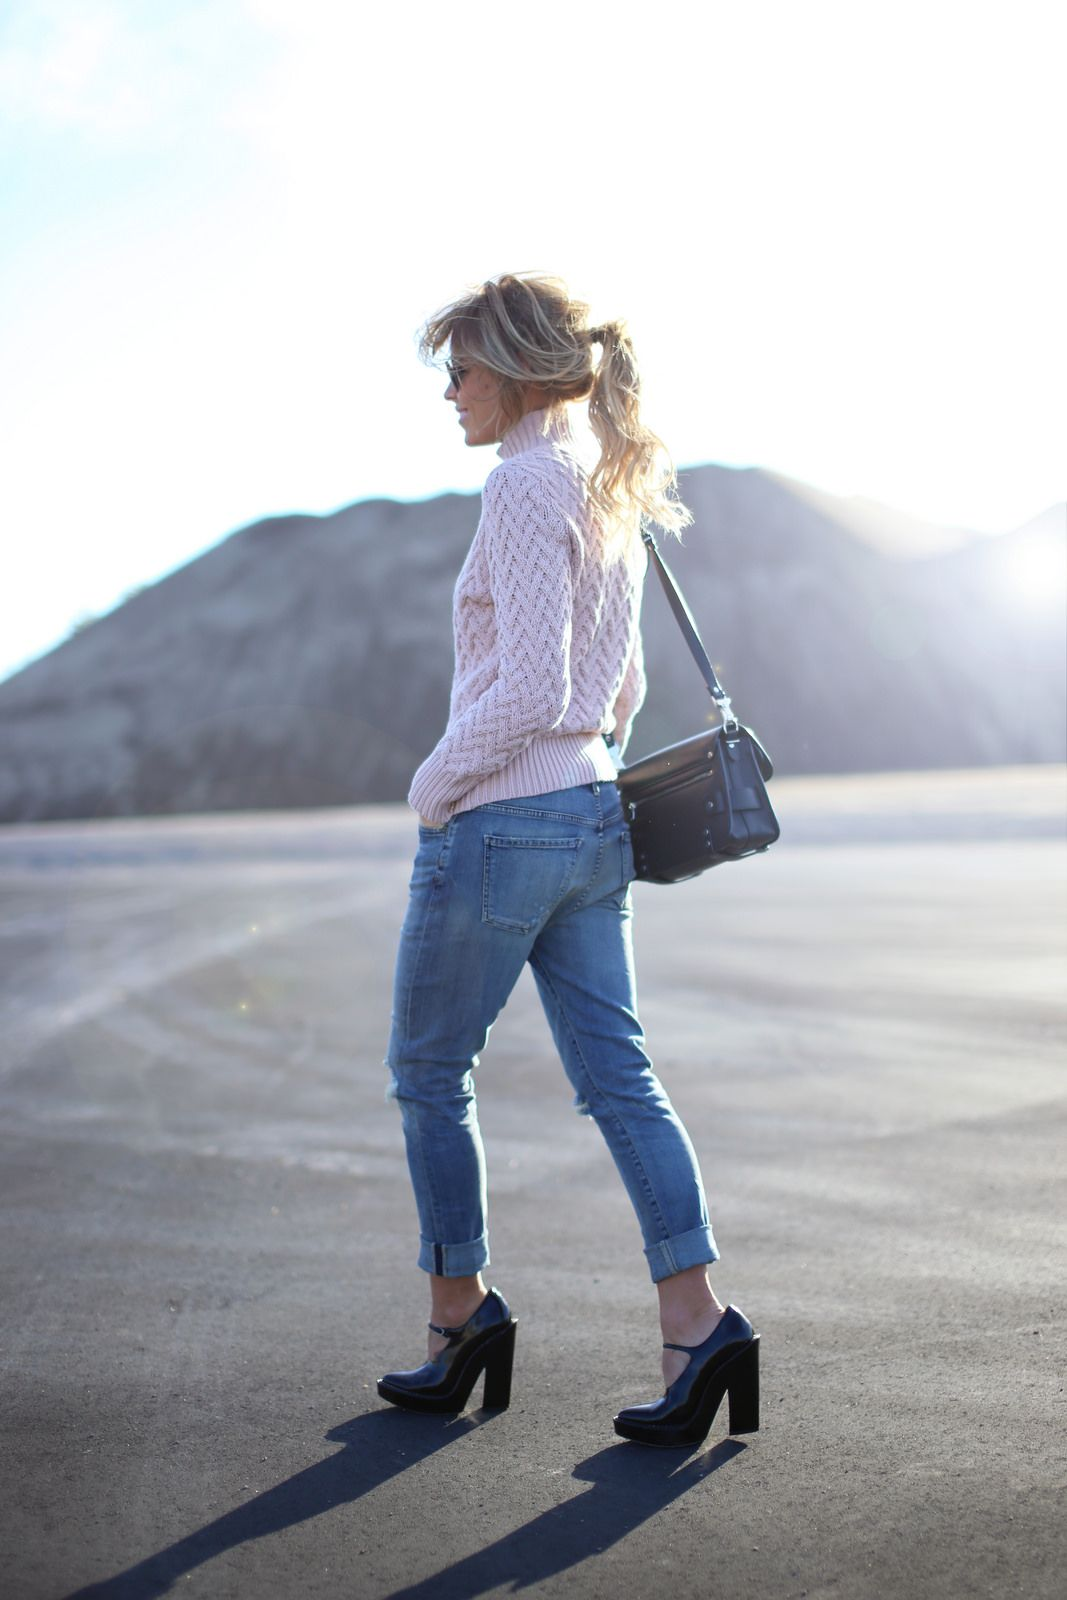 Happily Grey | #fashion #style #denim #jeans #streetstyle #ootd #fashionblogger @happilygrey